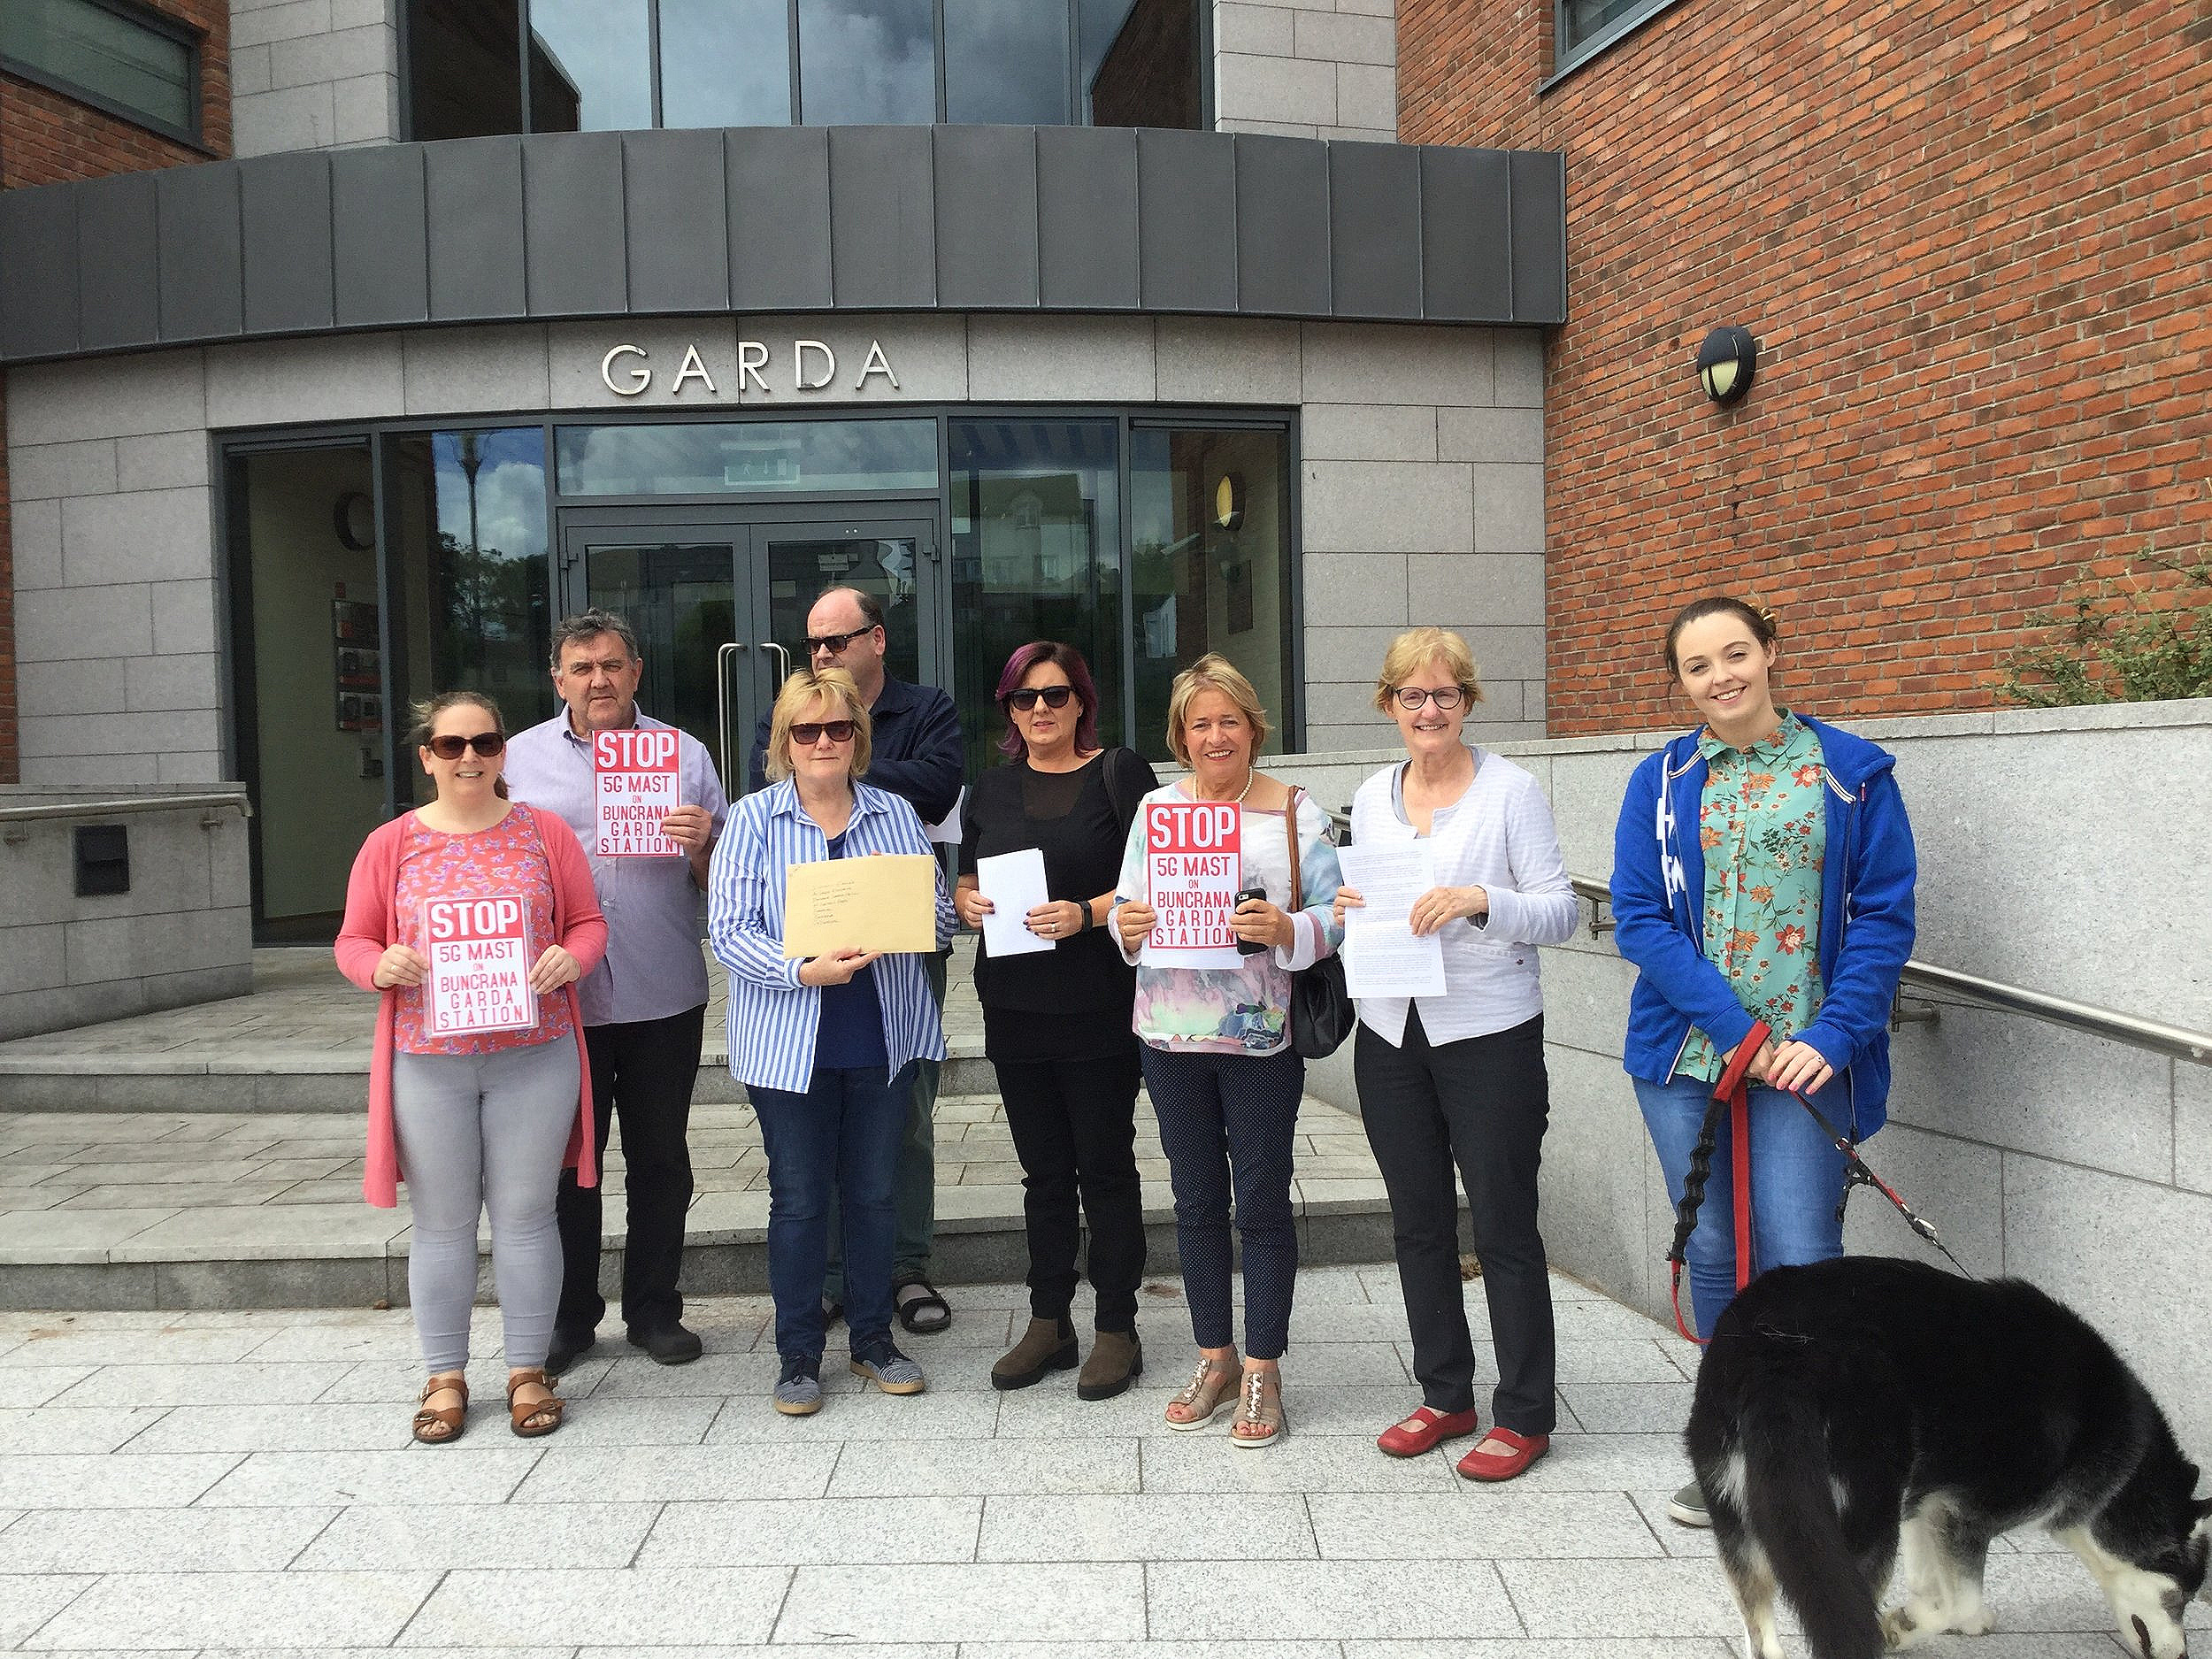 Local Buncrana residents (BGMAG) deliver petition to An Garda Síochana, June 22, 2019